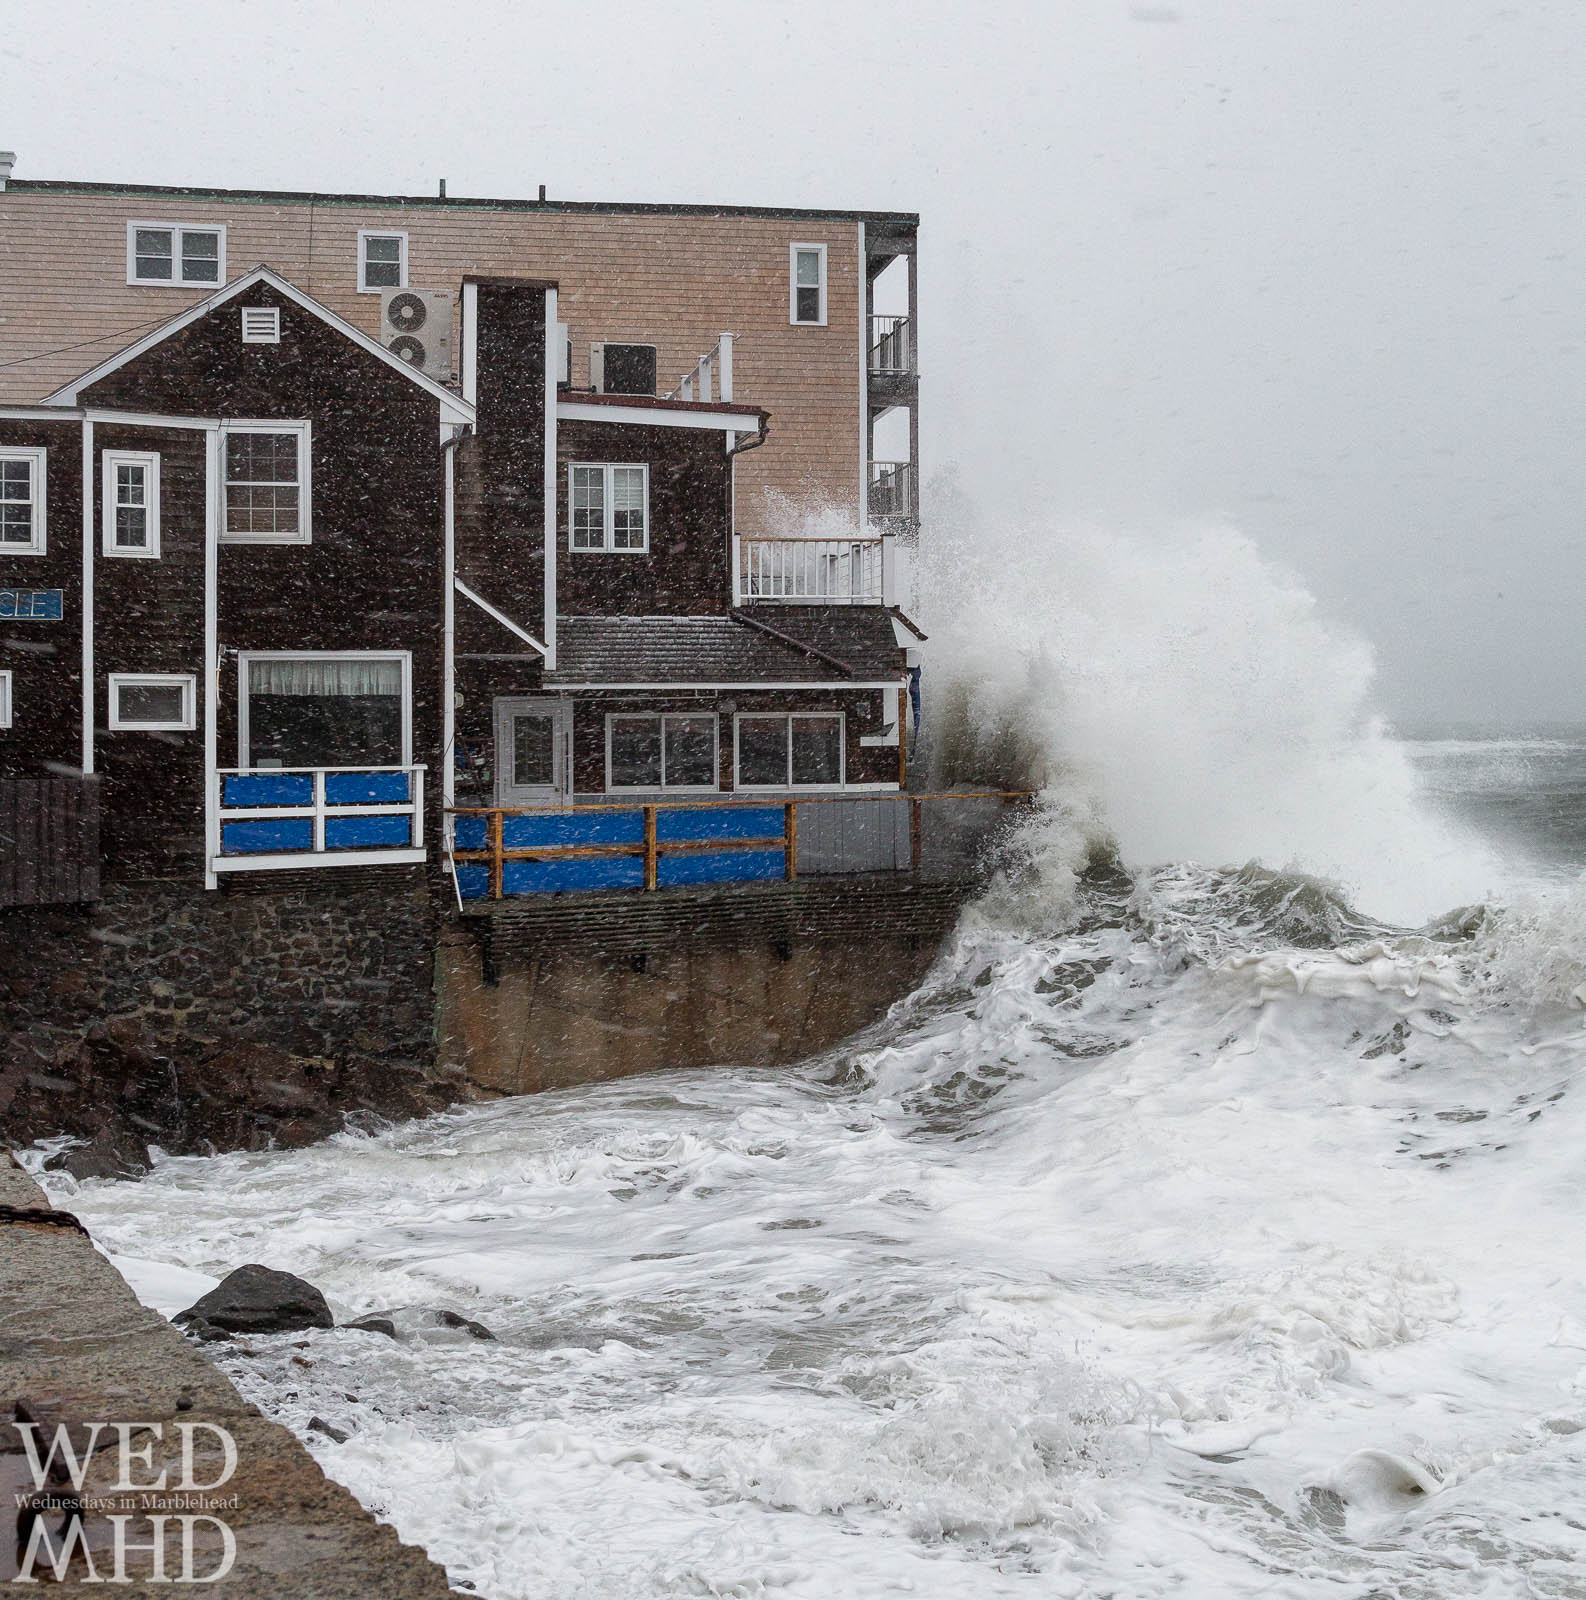 Best place to watch a Nor'Easter in Marblehead is Lovis Cover as the ocean meets the barnacle and waves explode high above the water